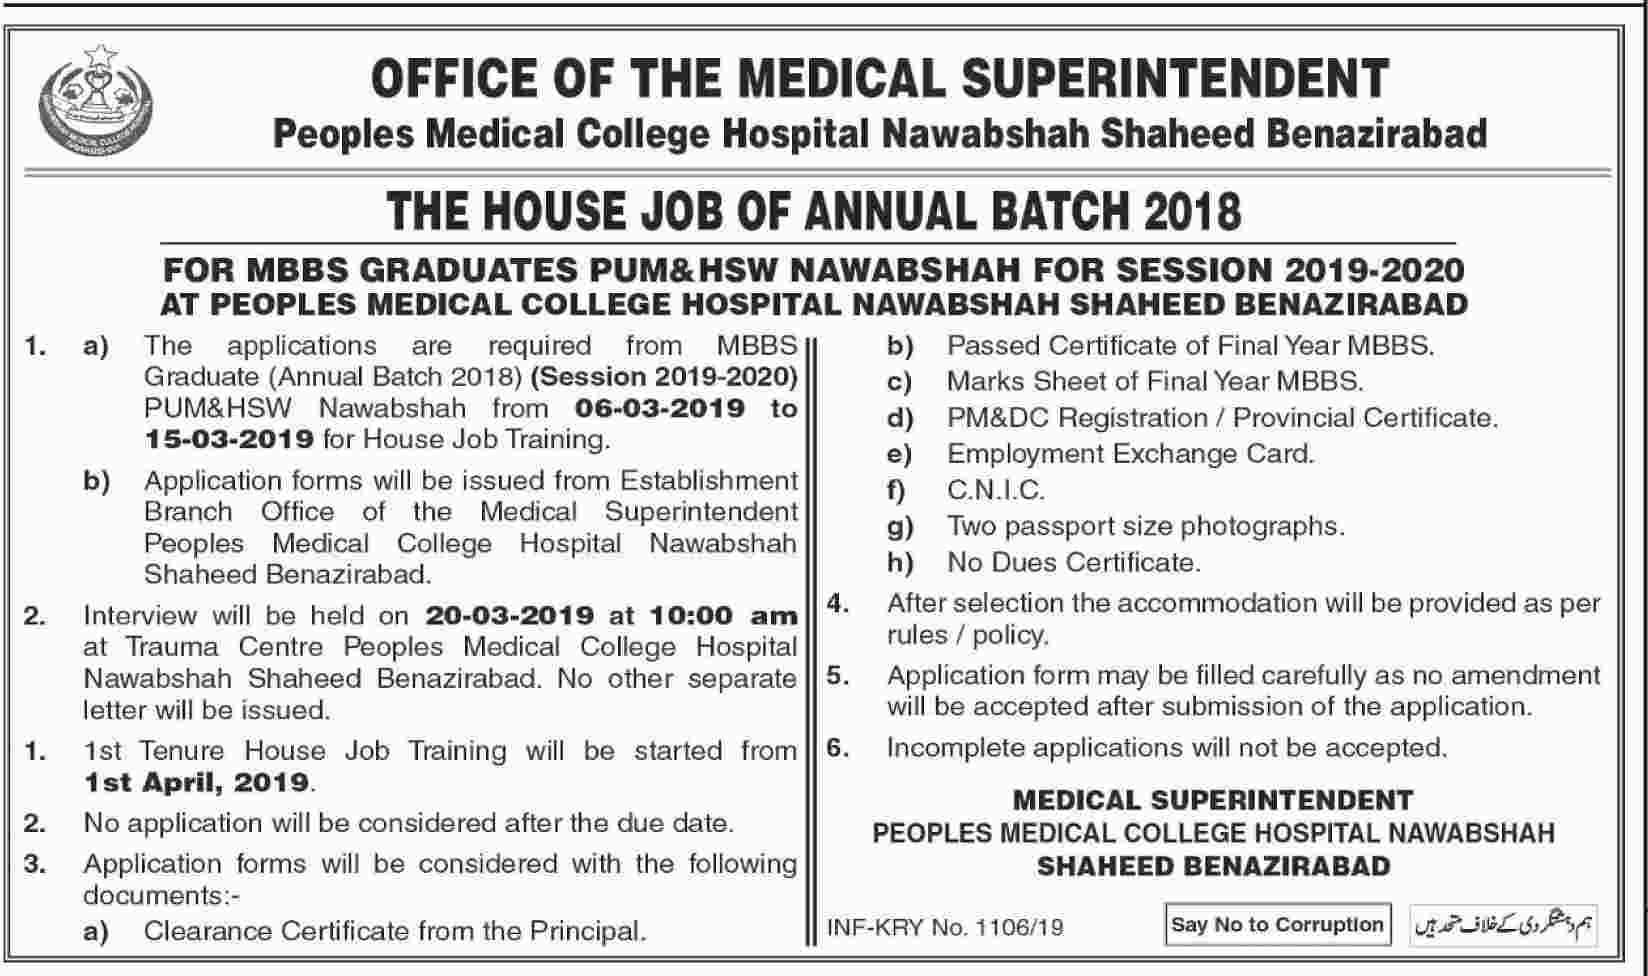 The House Job of Annual Batch 2018 07 March 2019